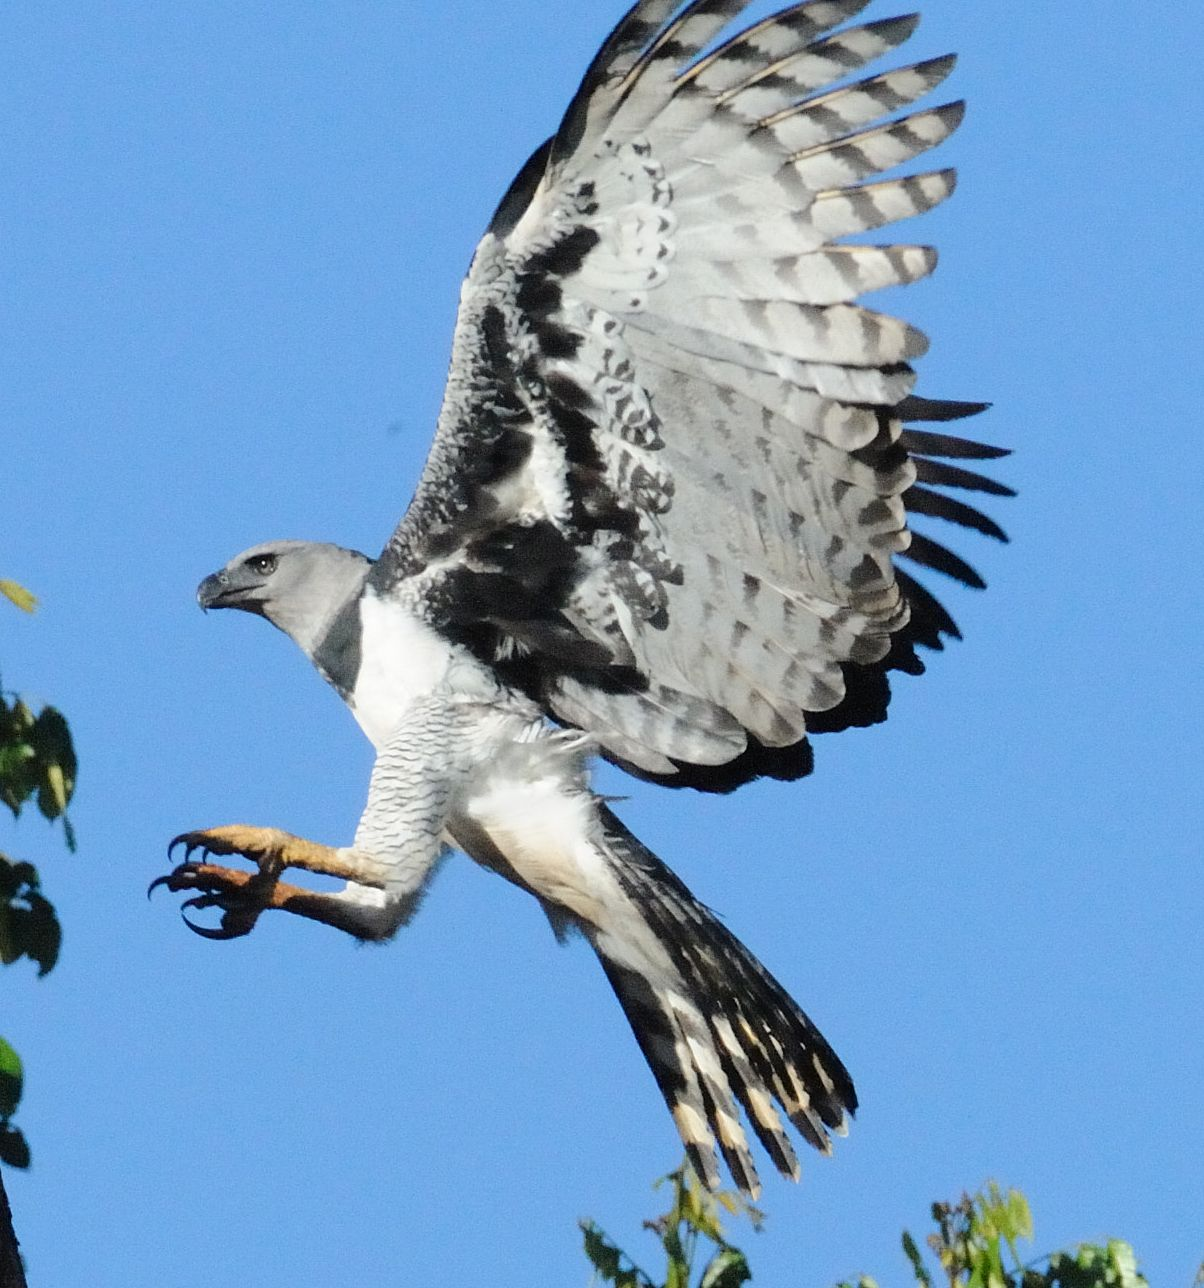 The Harpy Eagle has both the super powers of strength and size in